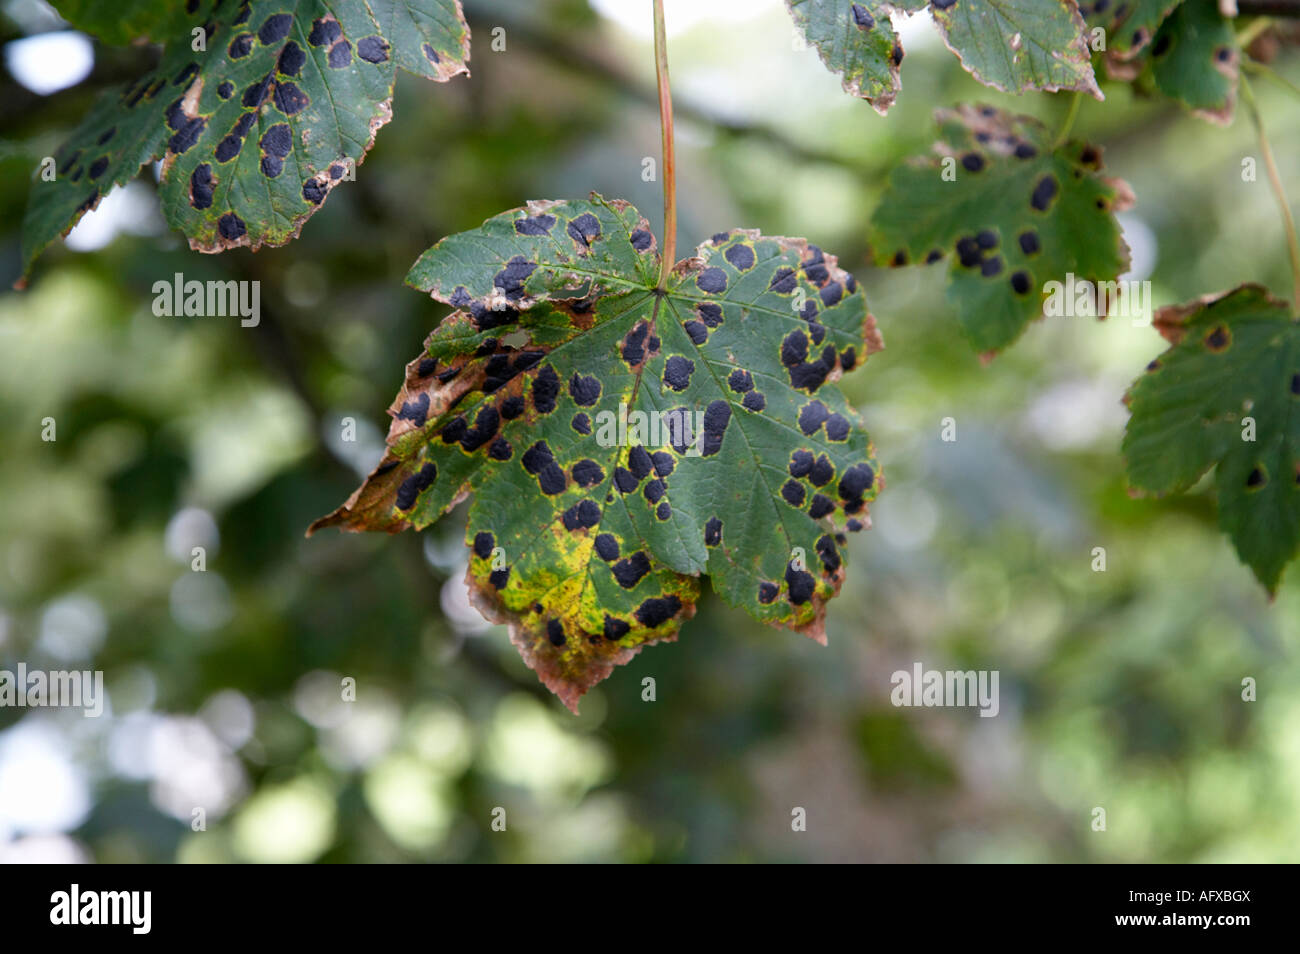 Rhytisma fungus fungal infection known as tar spots on sycamore tree green leaves - Stock Image